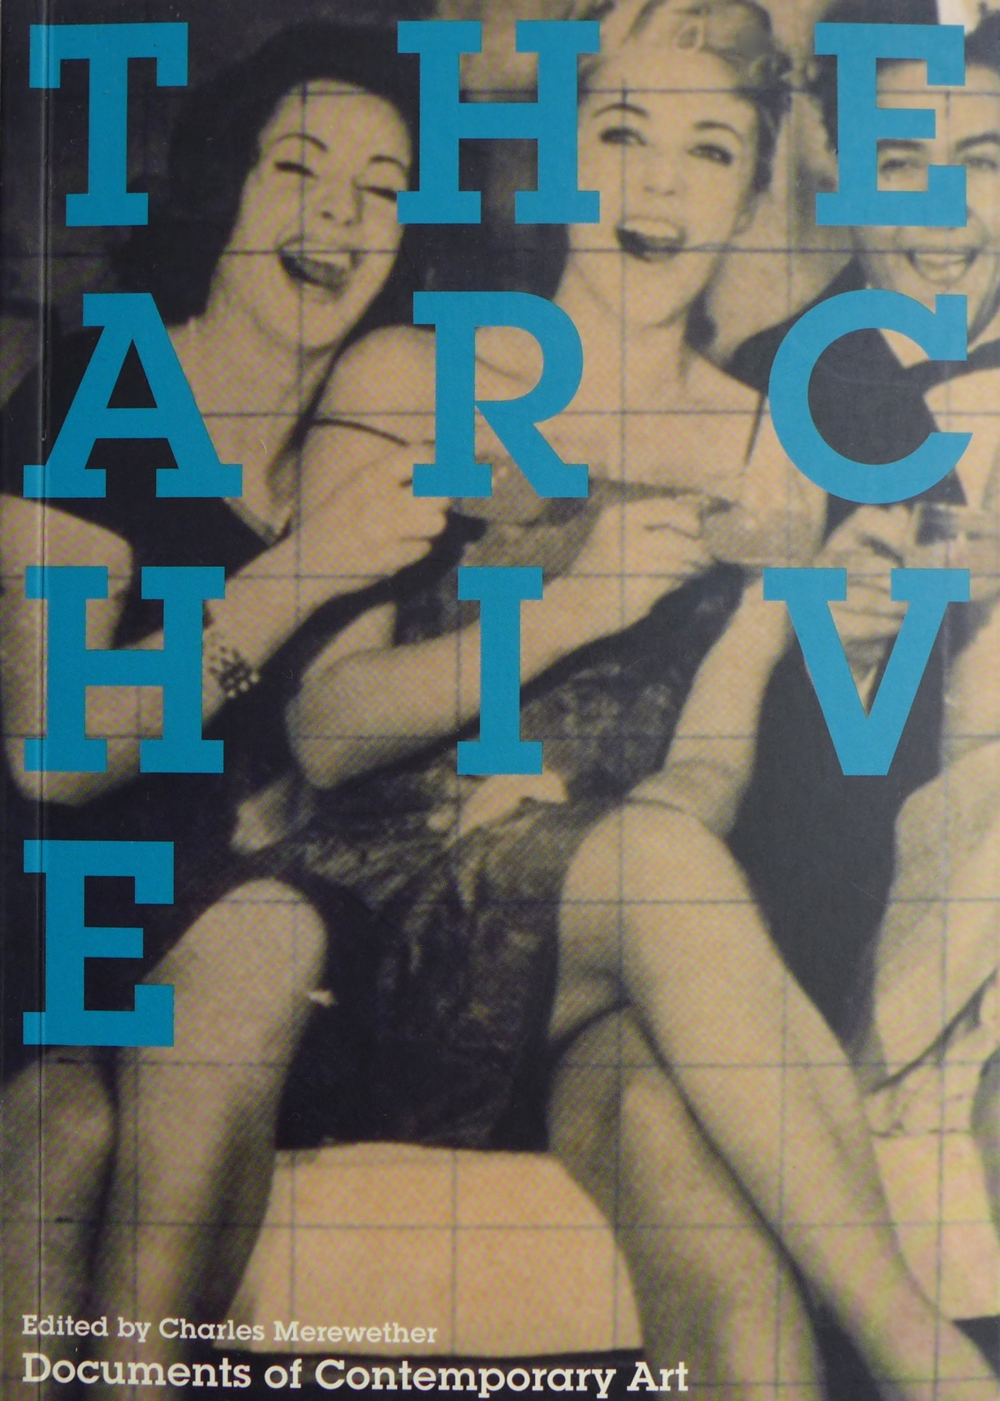 The Archive: Edited by Charles Merewether.Documents of Contemporary Art. Whitechapel & MIT Press